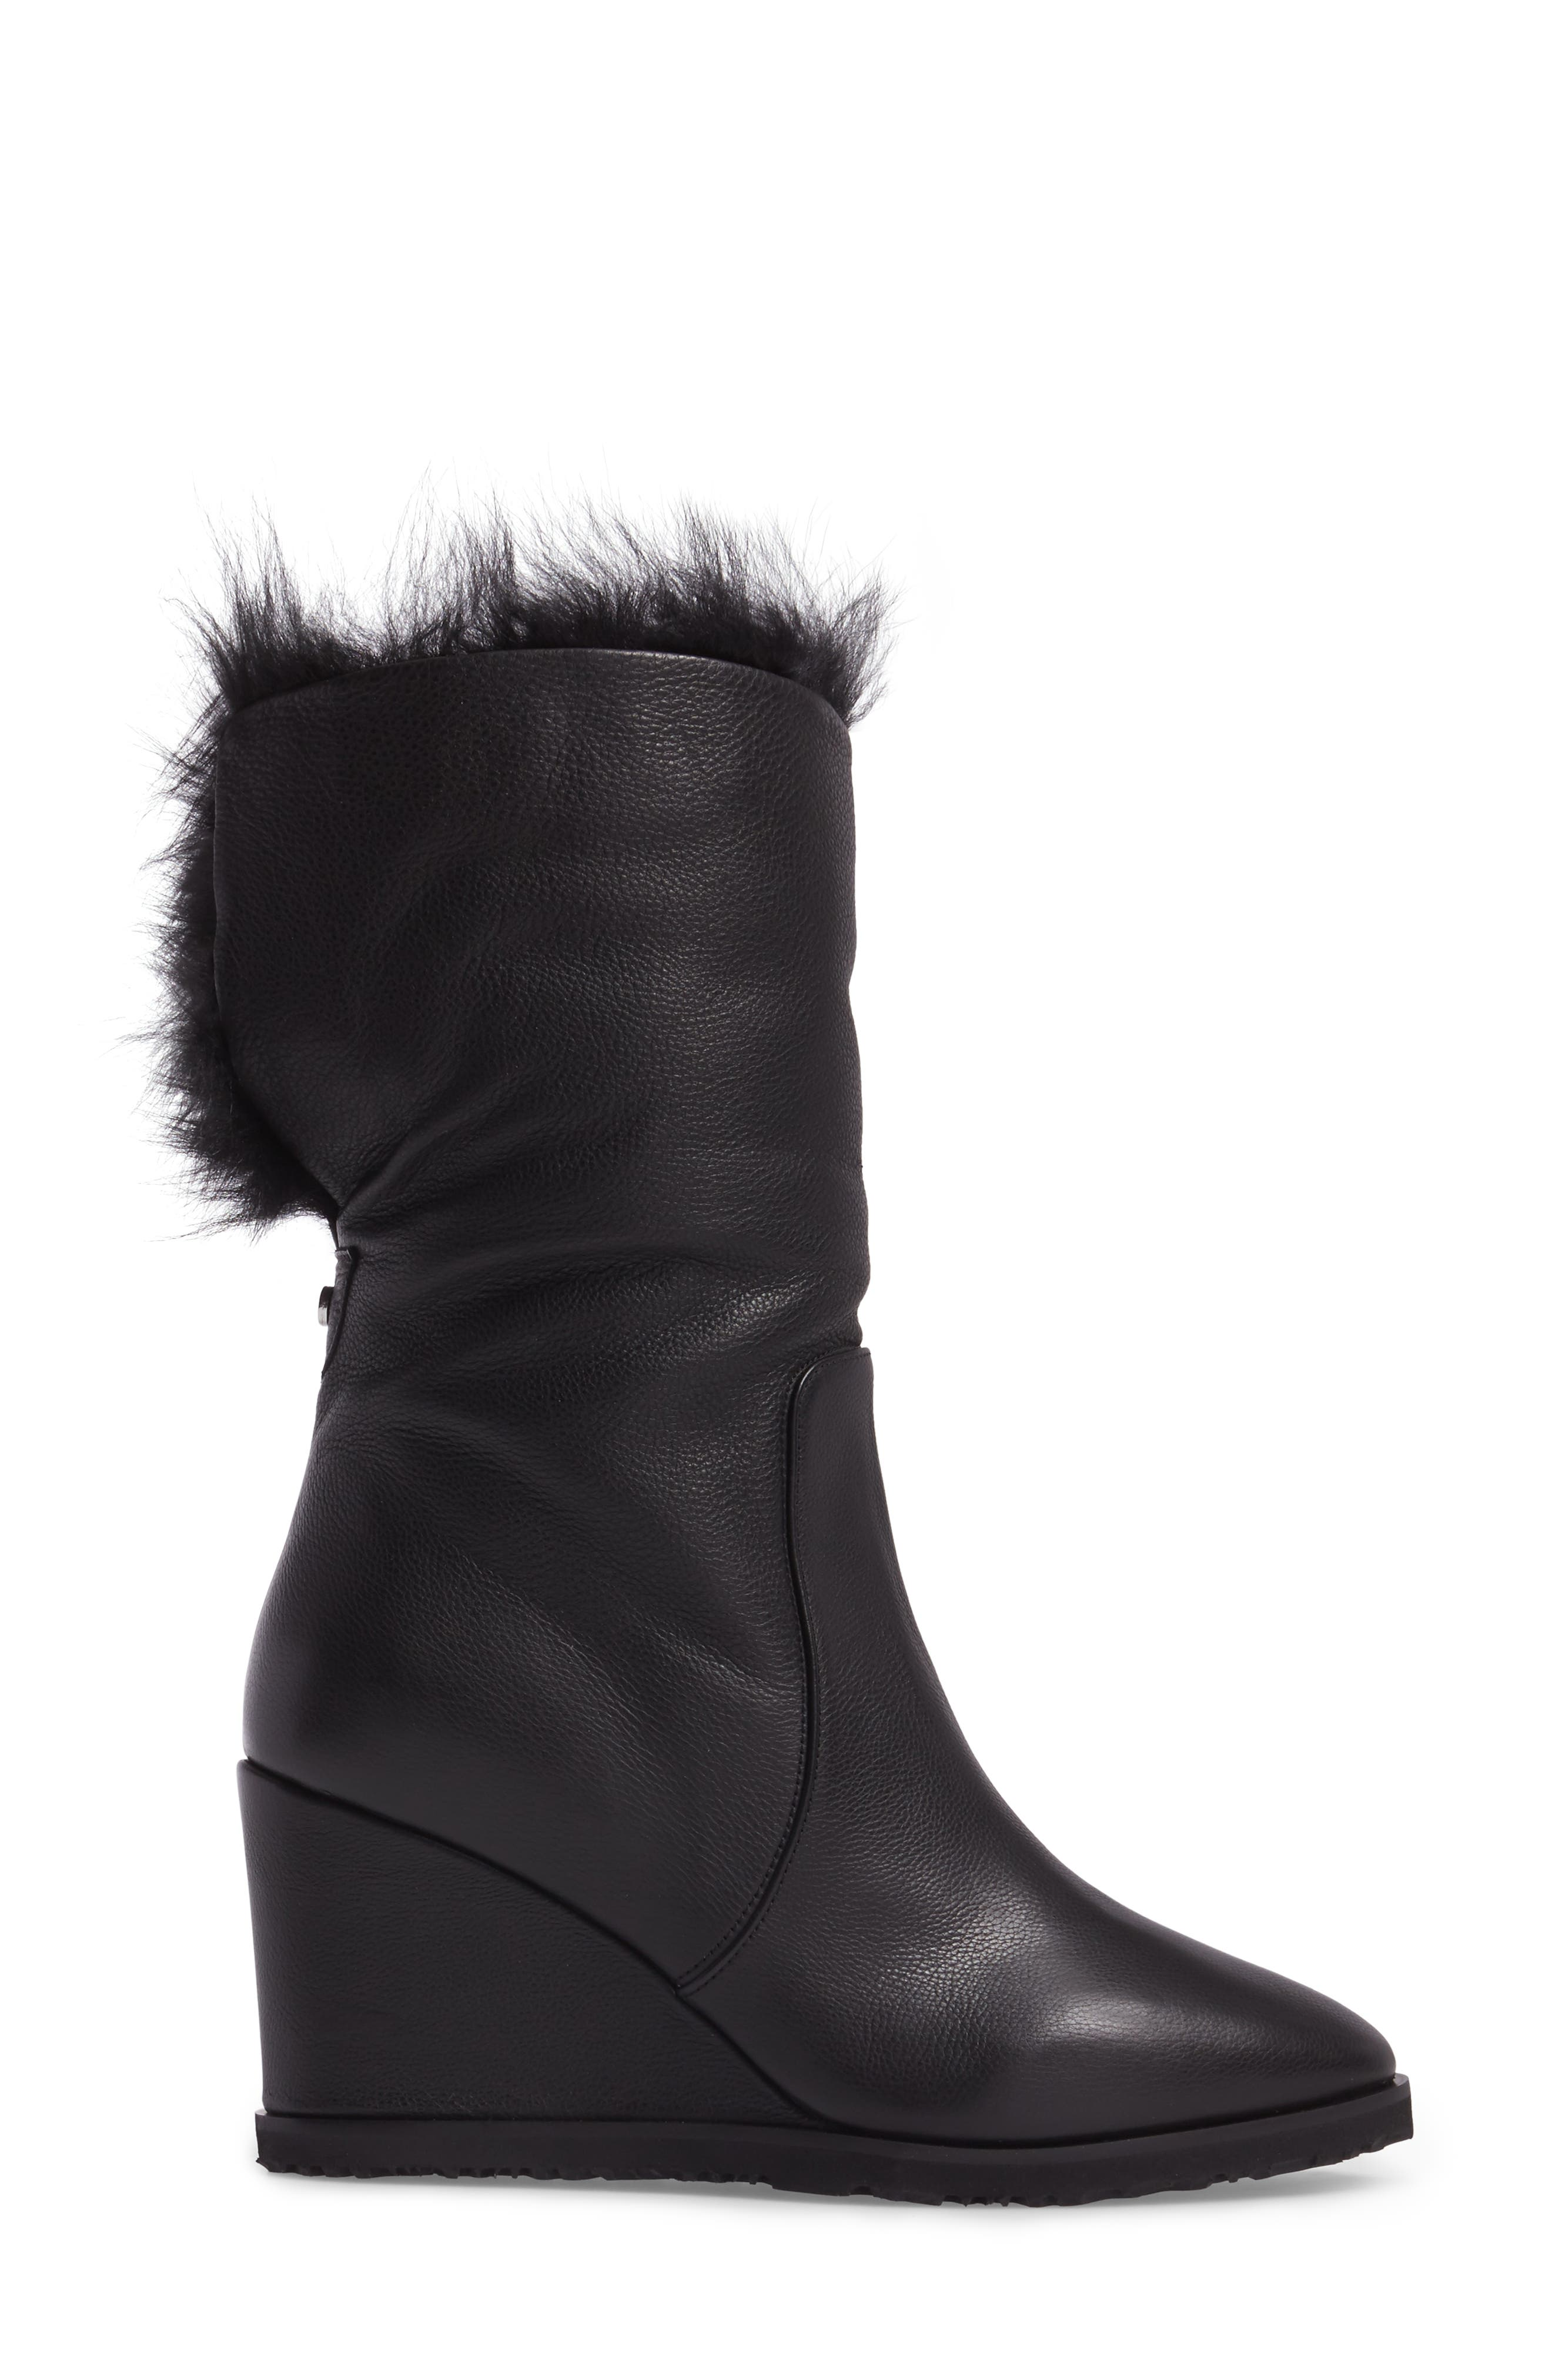 Massima Genuine Shearling Wedge Boot,                             Alternate thumbnail 3, color,                             Black Leather